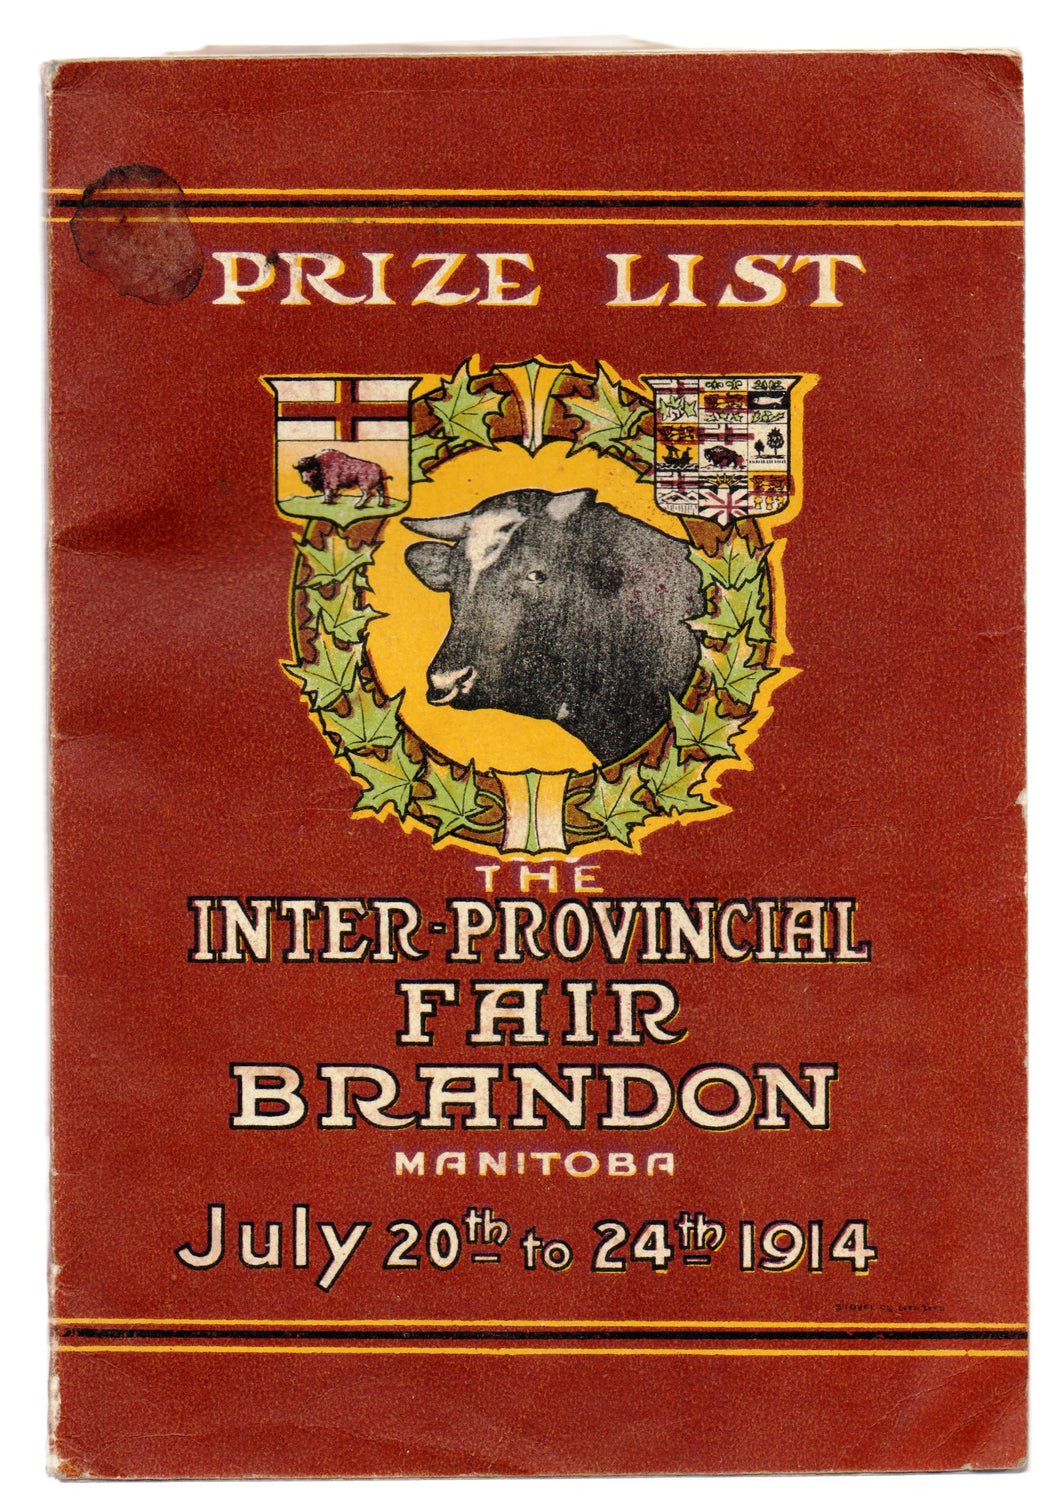 Prize List, The Inter-Provincial Fair Brandon, Manitoba July 20th to 24th 1914